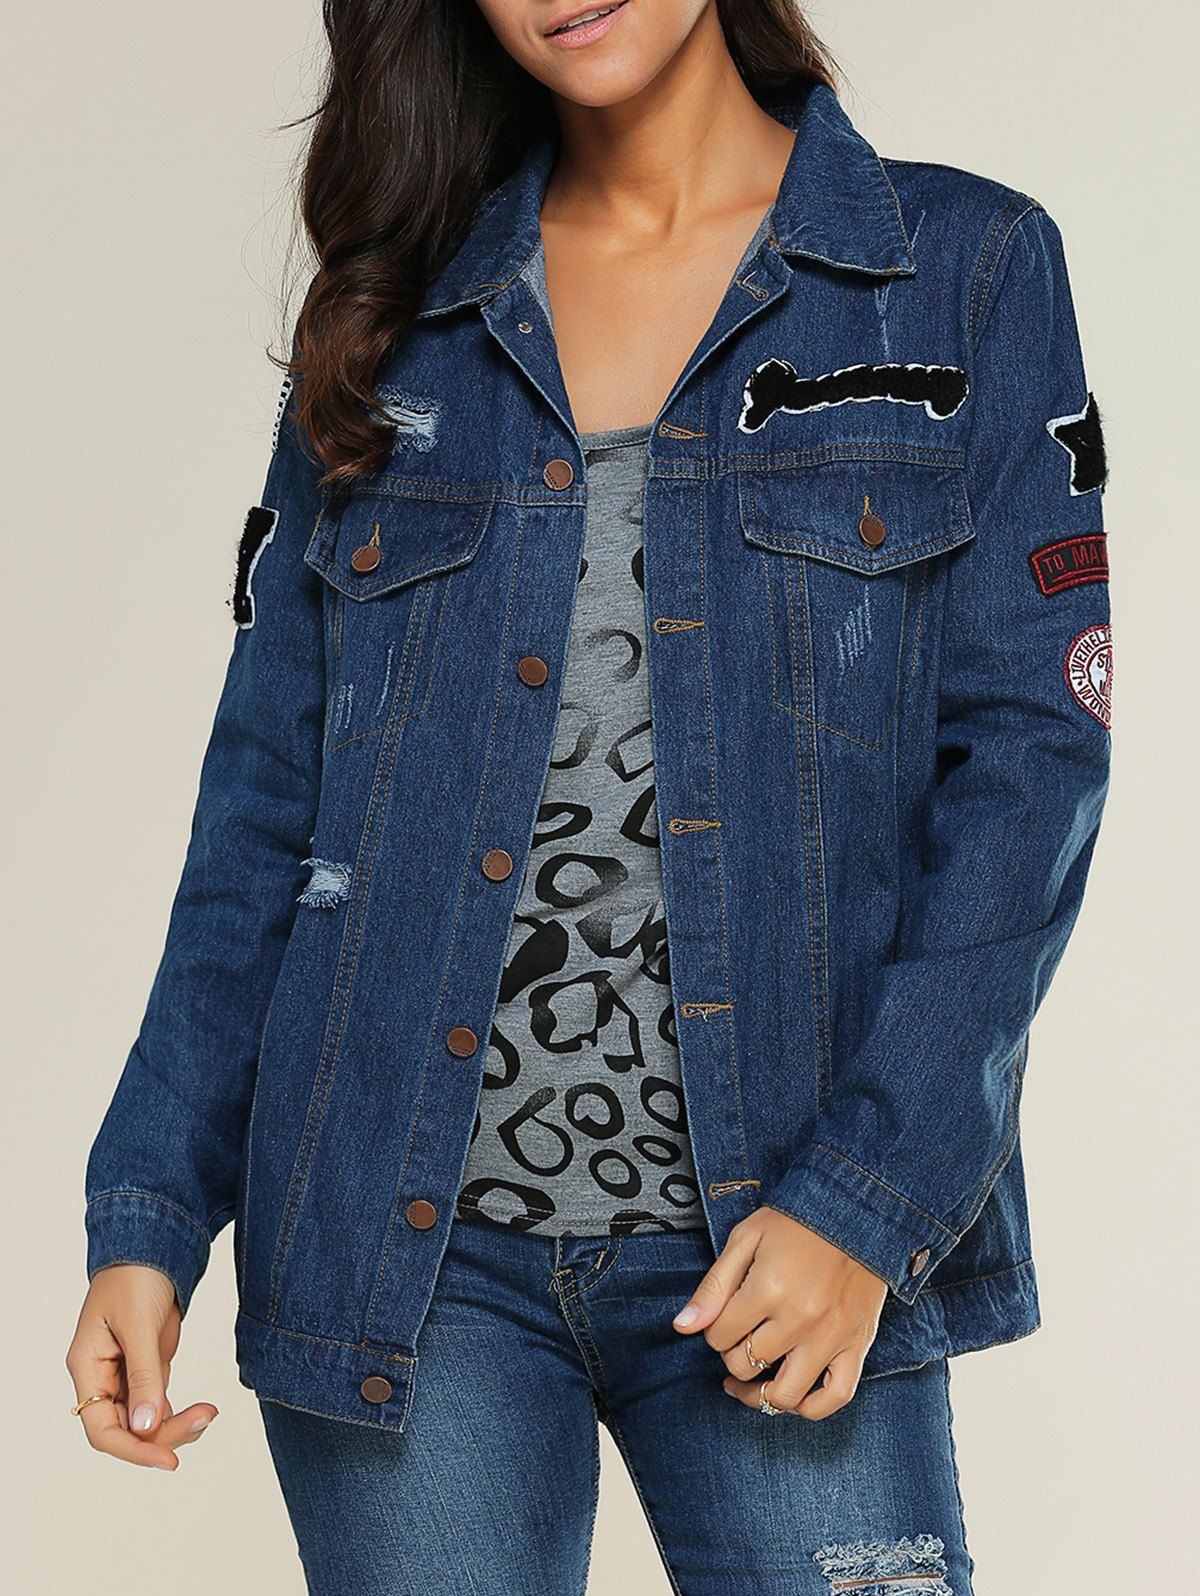 http://www.zaful.com/letter-applique-shirt-collar-ripped-denim-jacket-p_195998.html